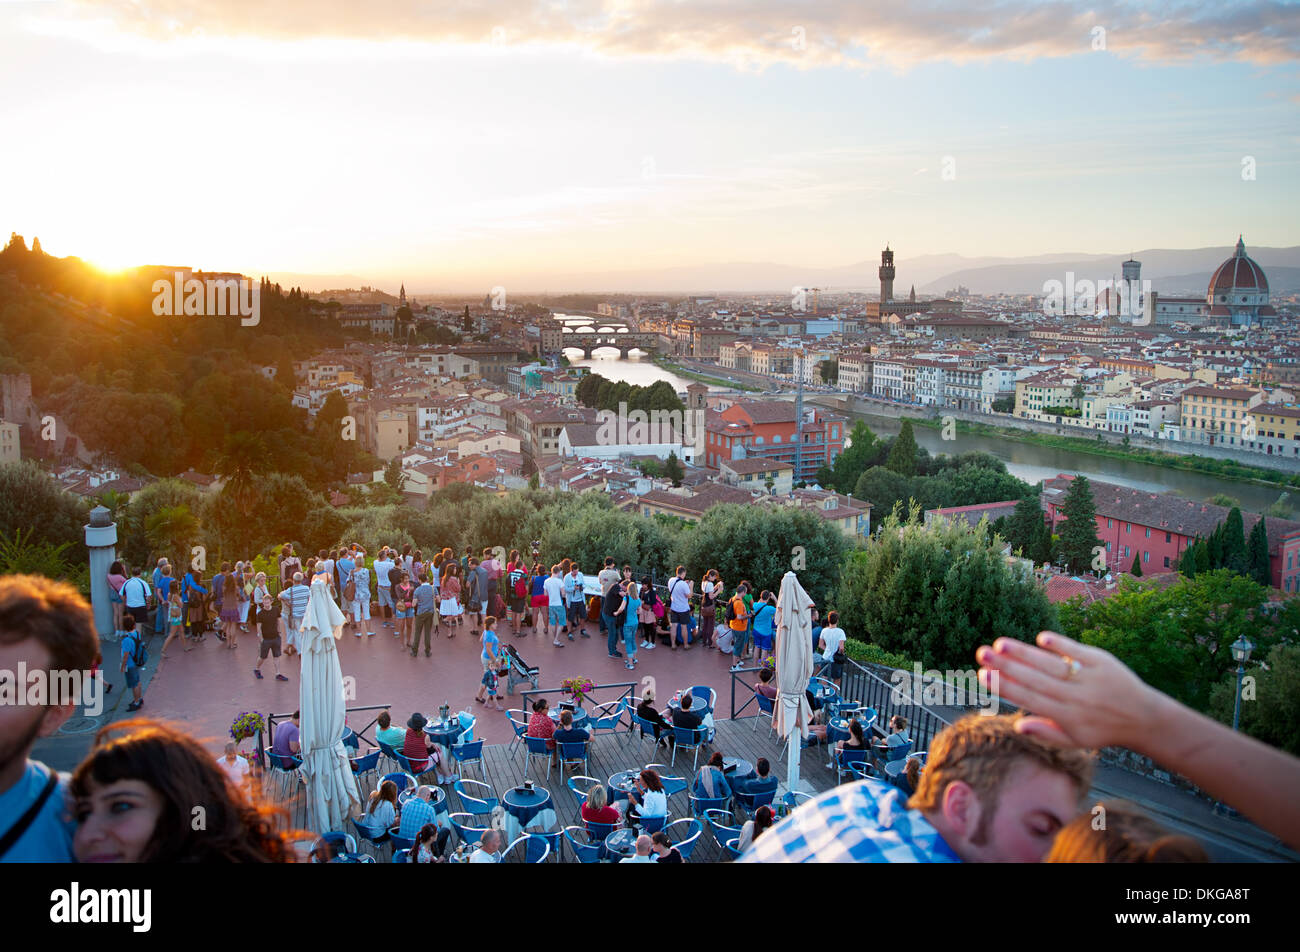 Tourist looking at Florence from the viewpoint - Stock Image